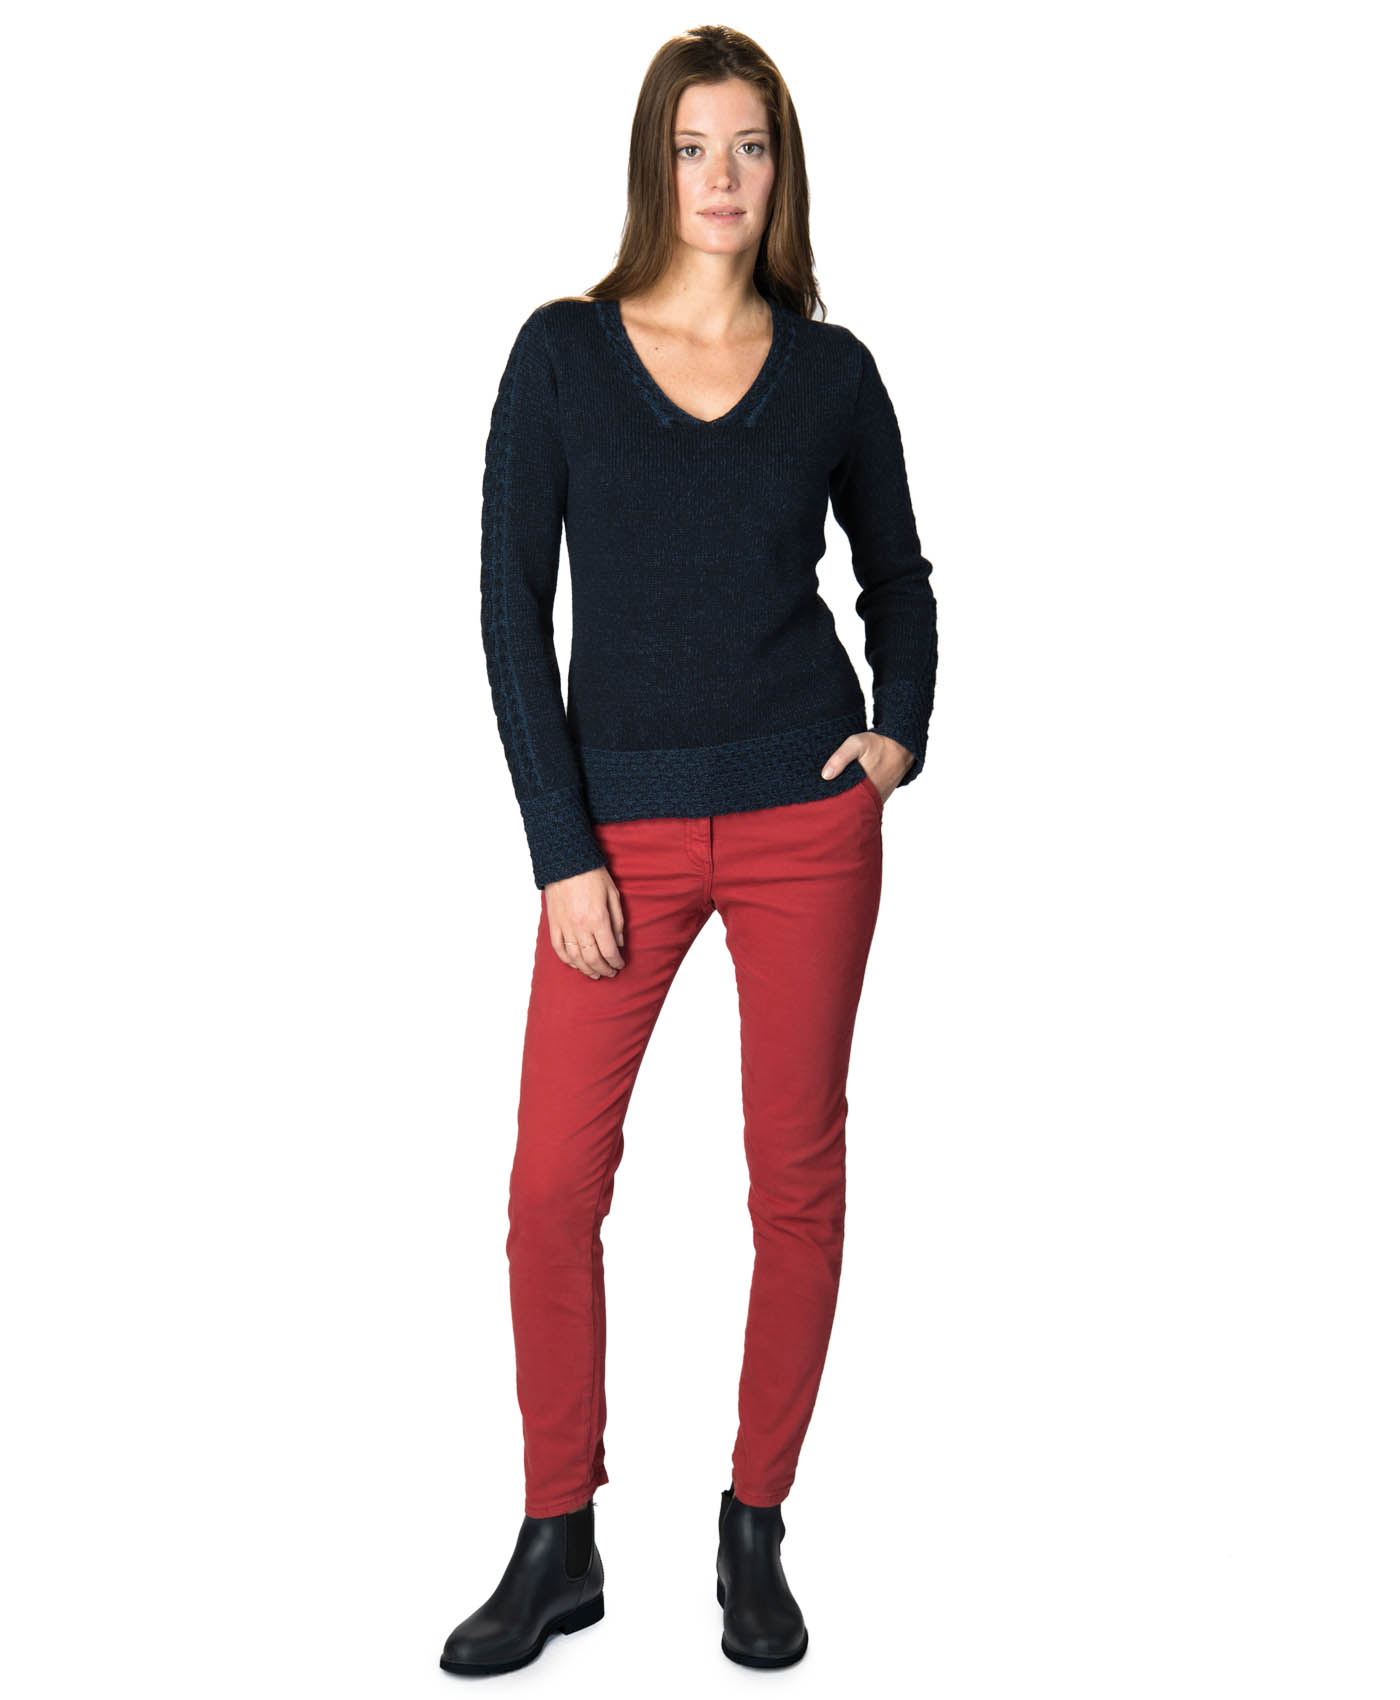 design intemporel 4912f 57fa9 Pantalon femme